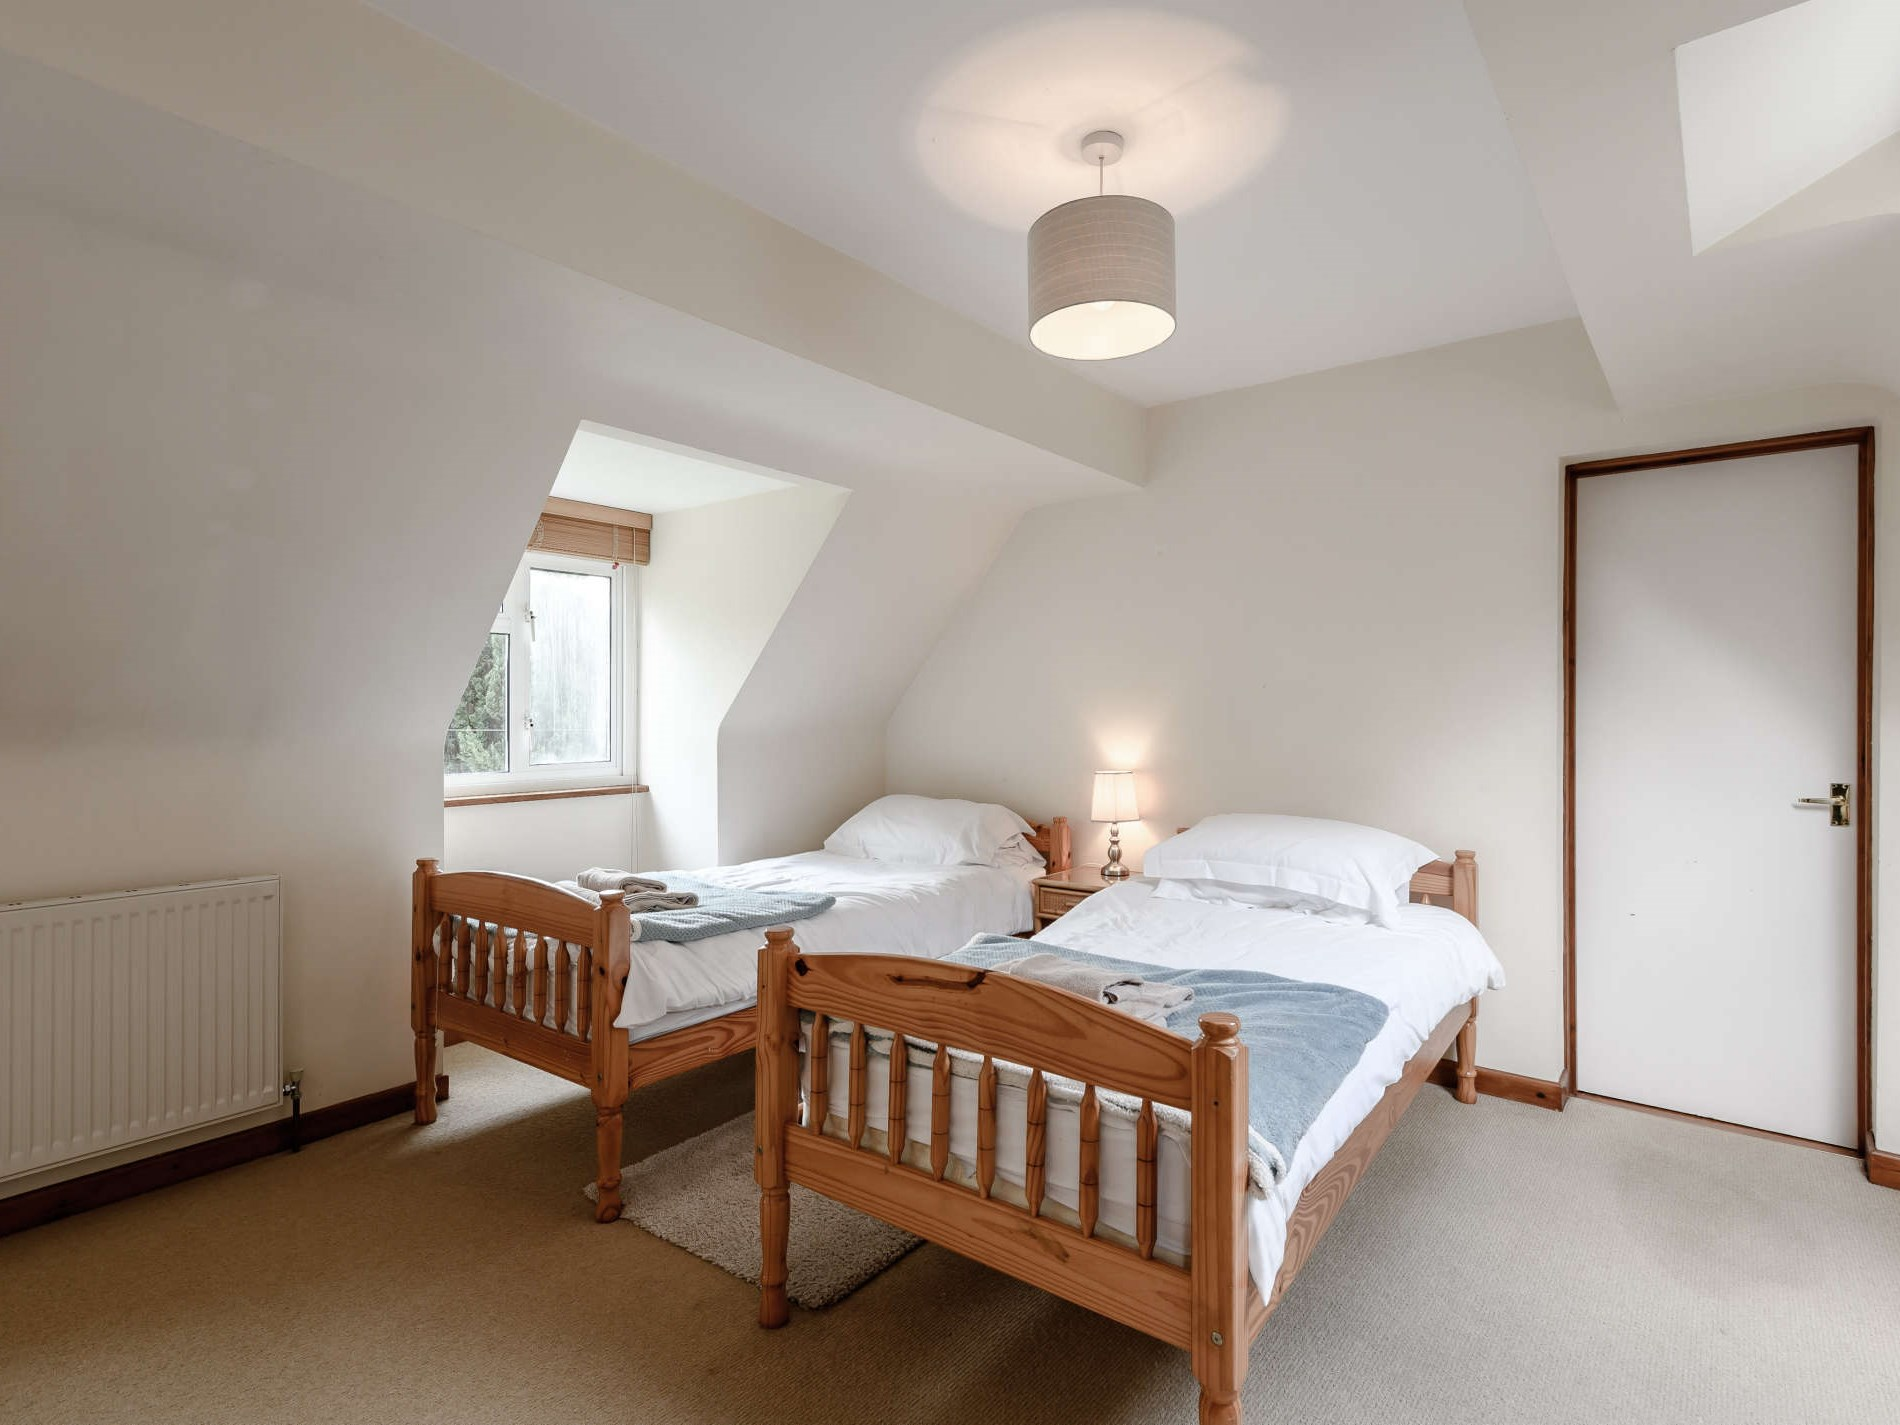 Double and two single beds